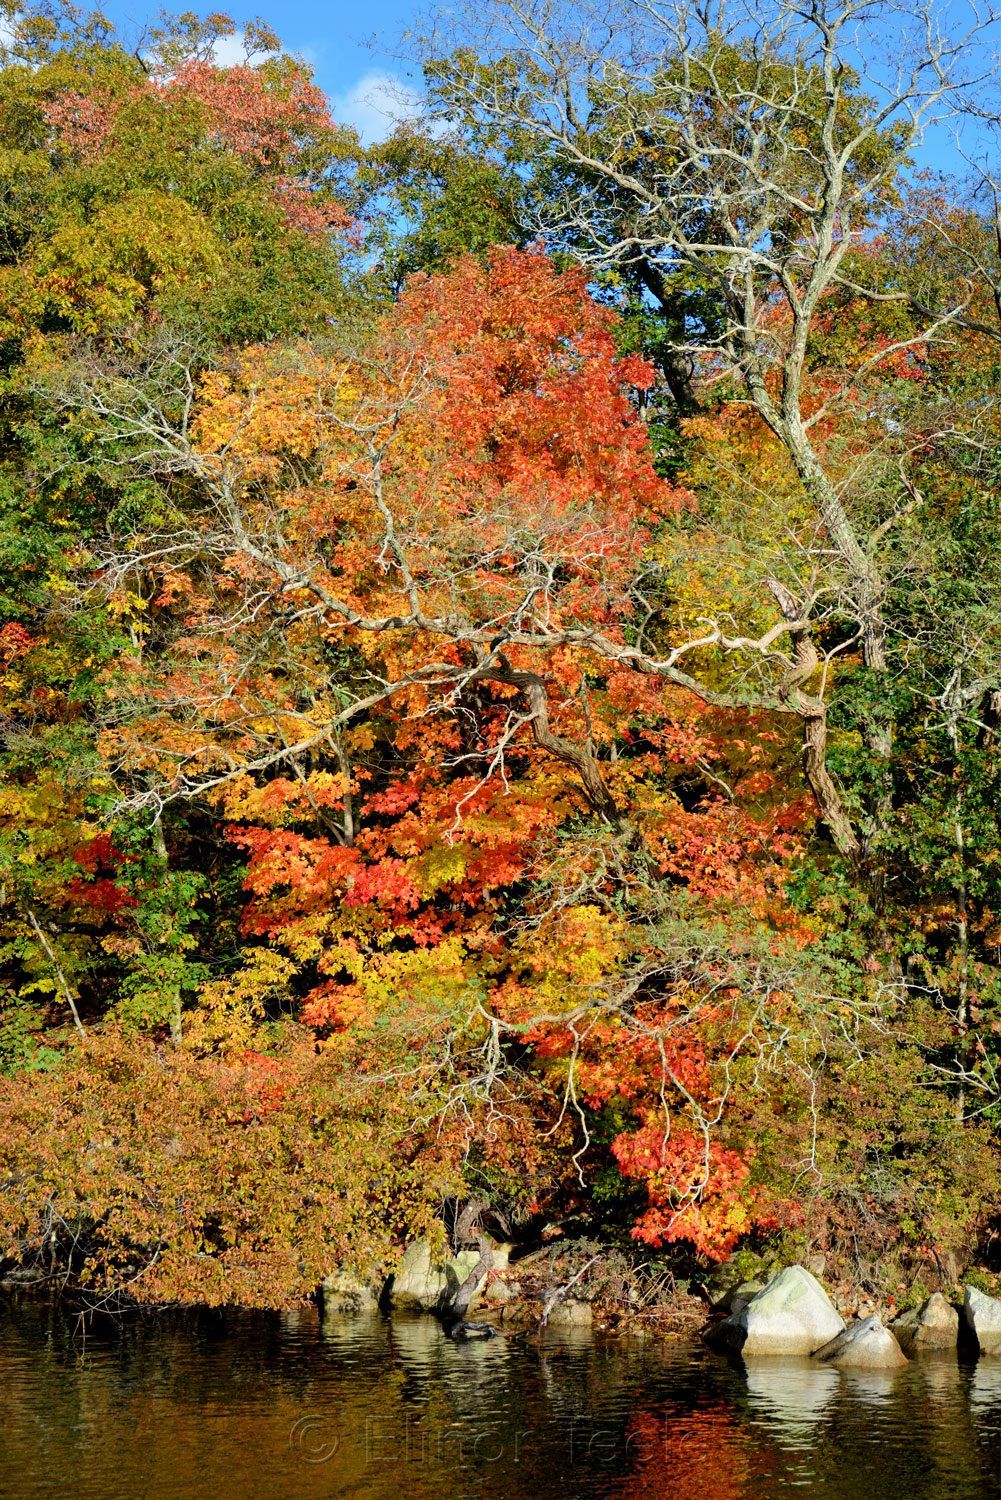 Fall Foliage - Maples 1